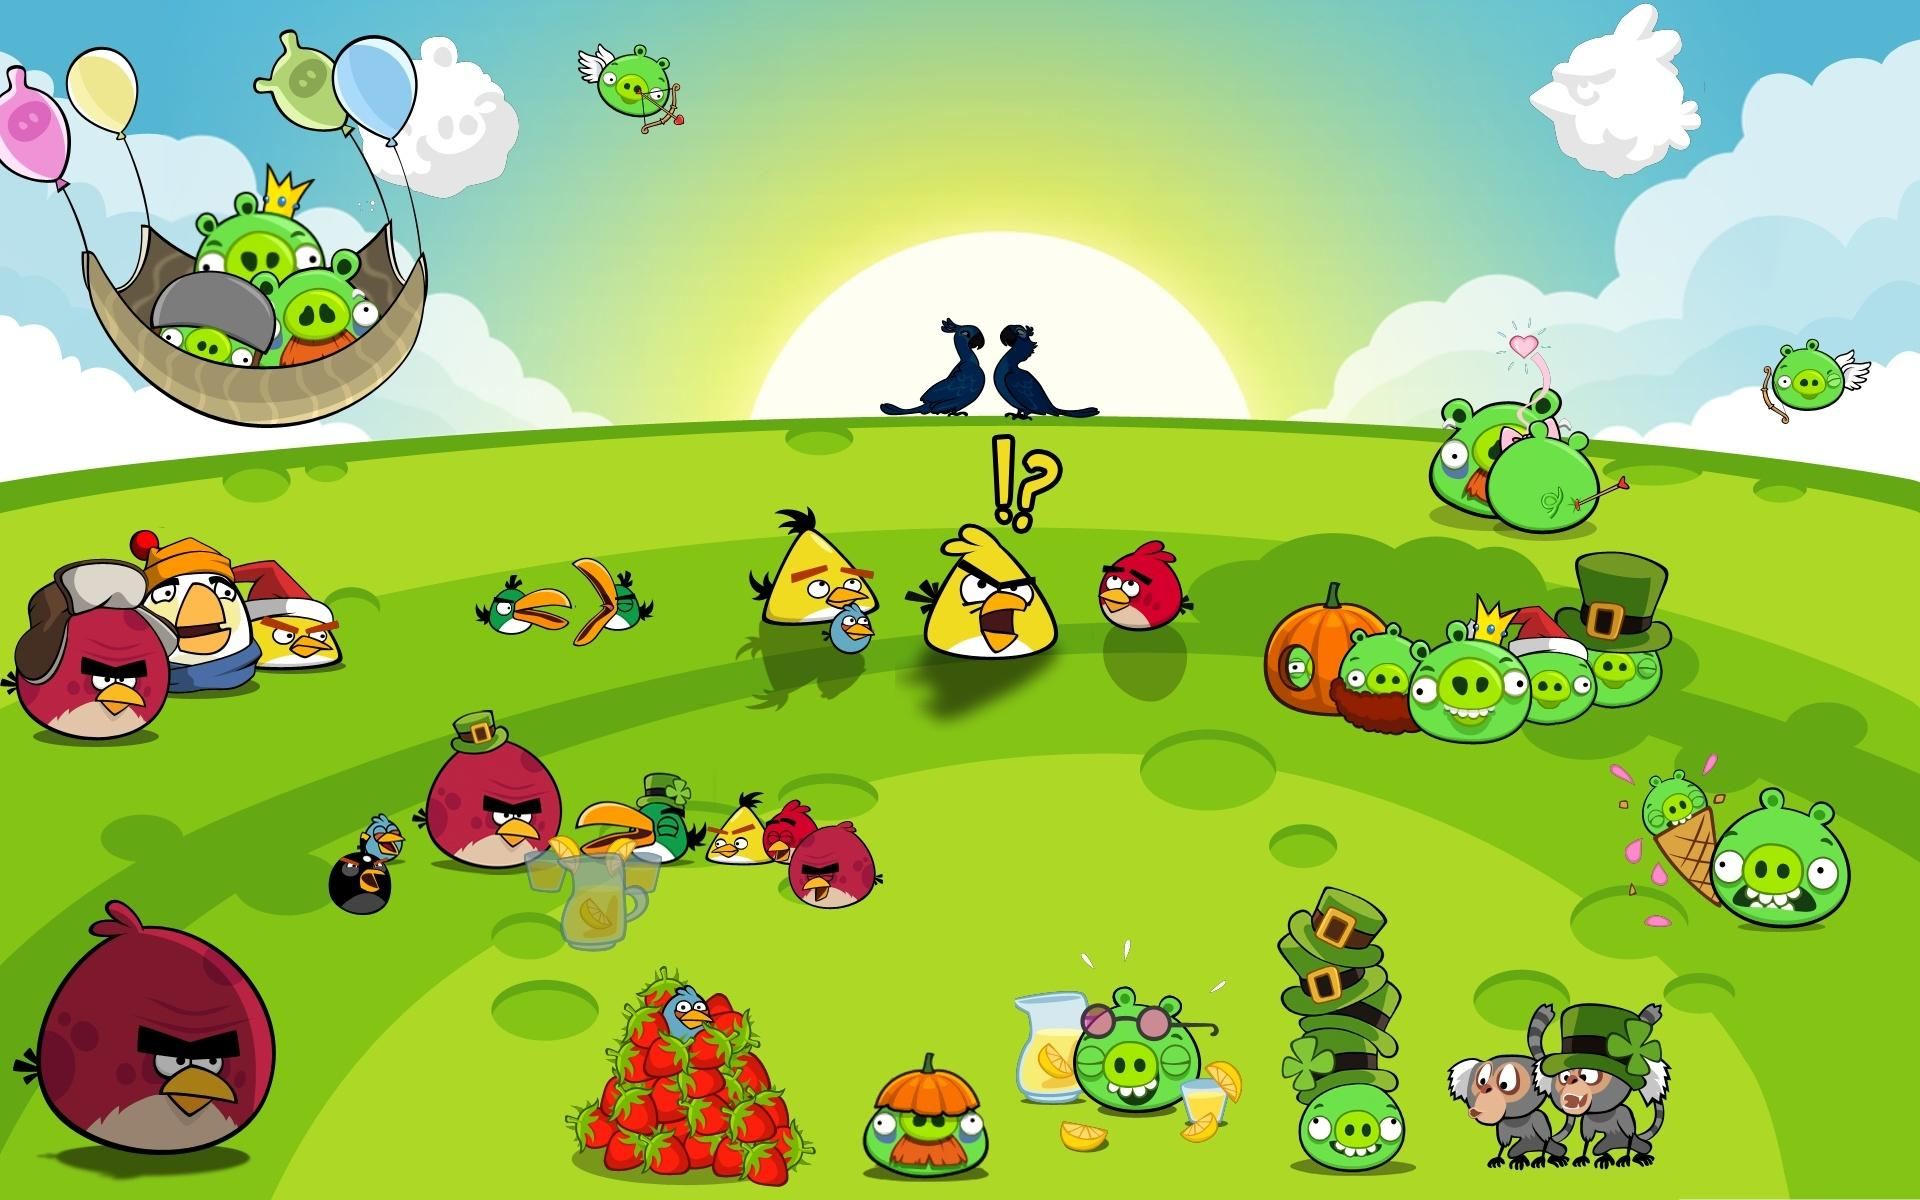 Angry Birds HD Background Image for Tablet Cartoons